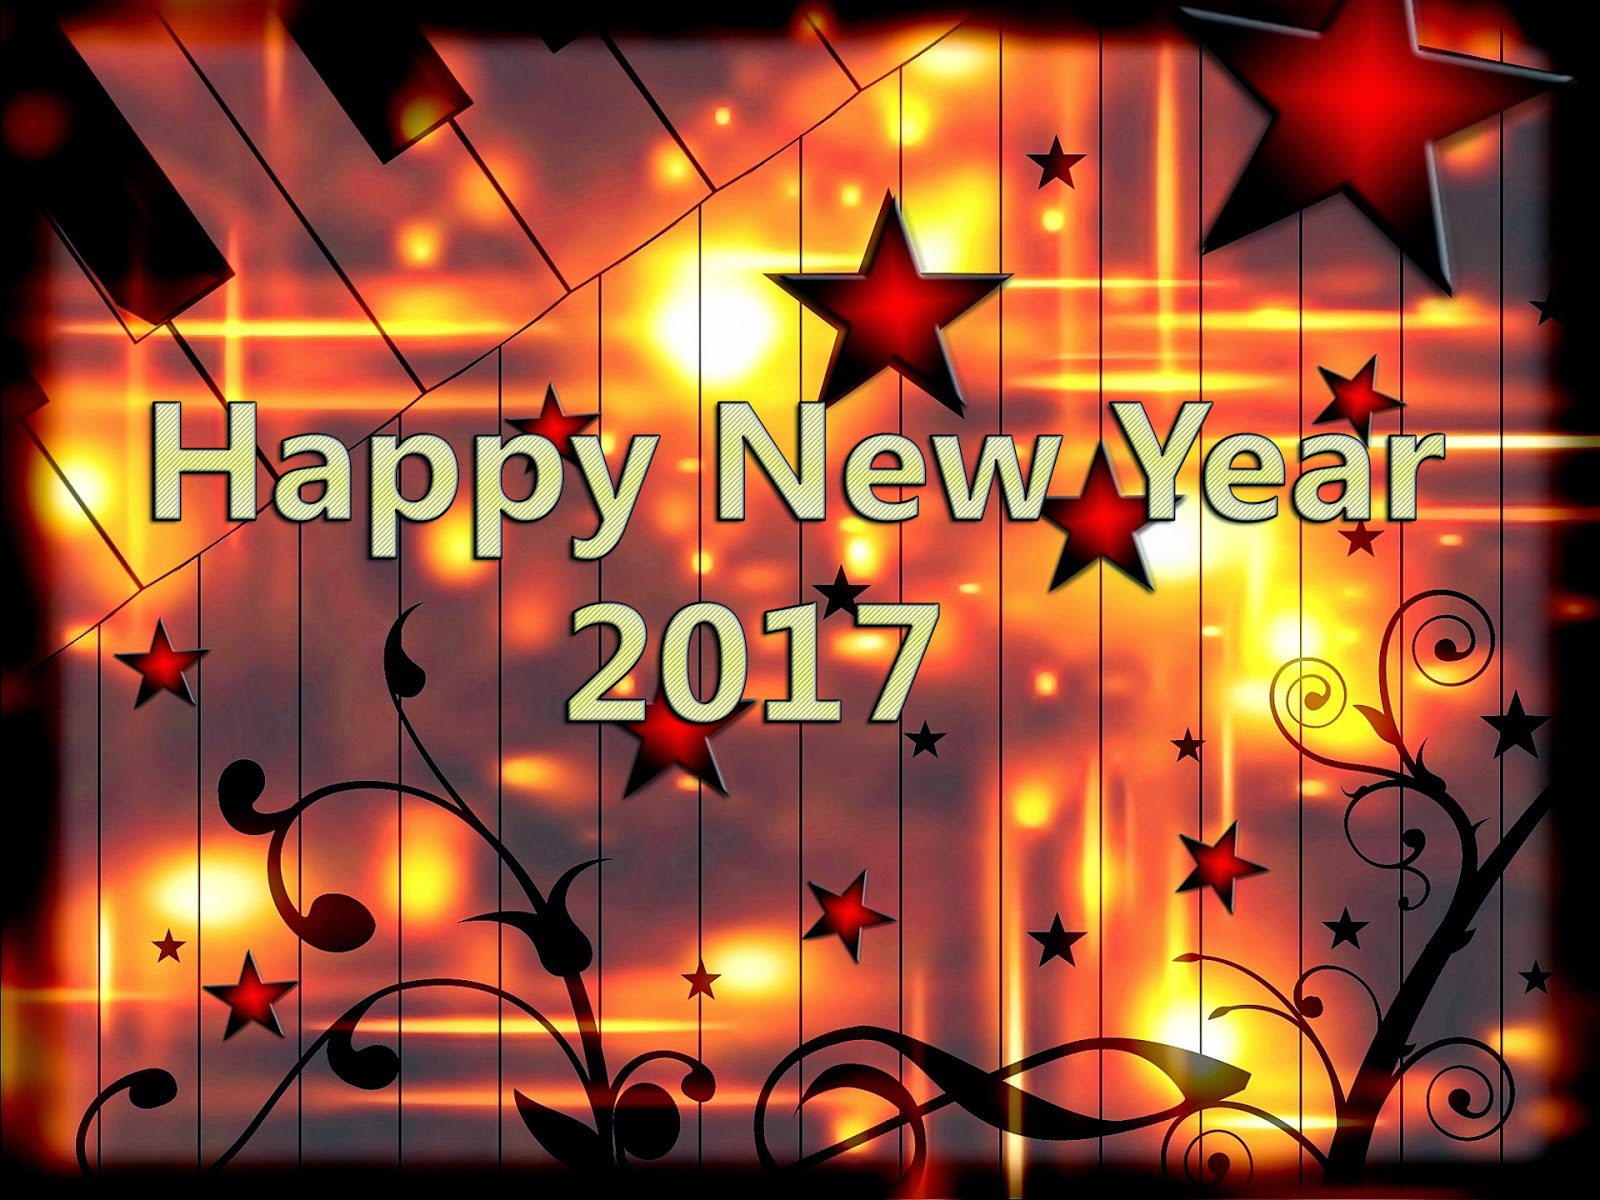 Happy New Year Wallpapers 2017 Free Download Wallpaper